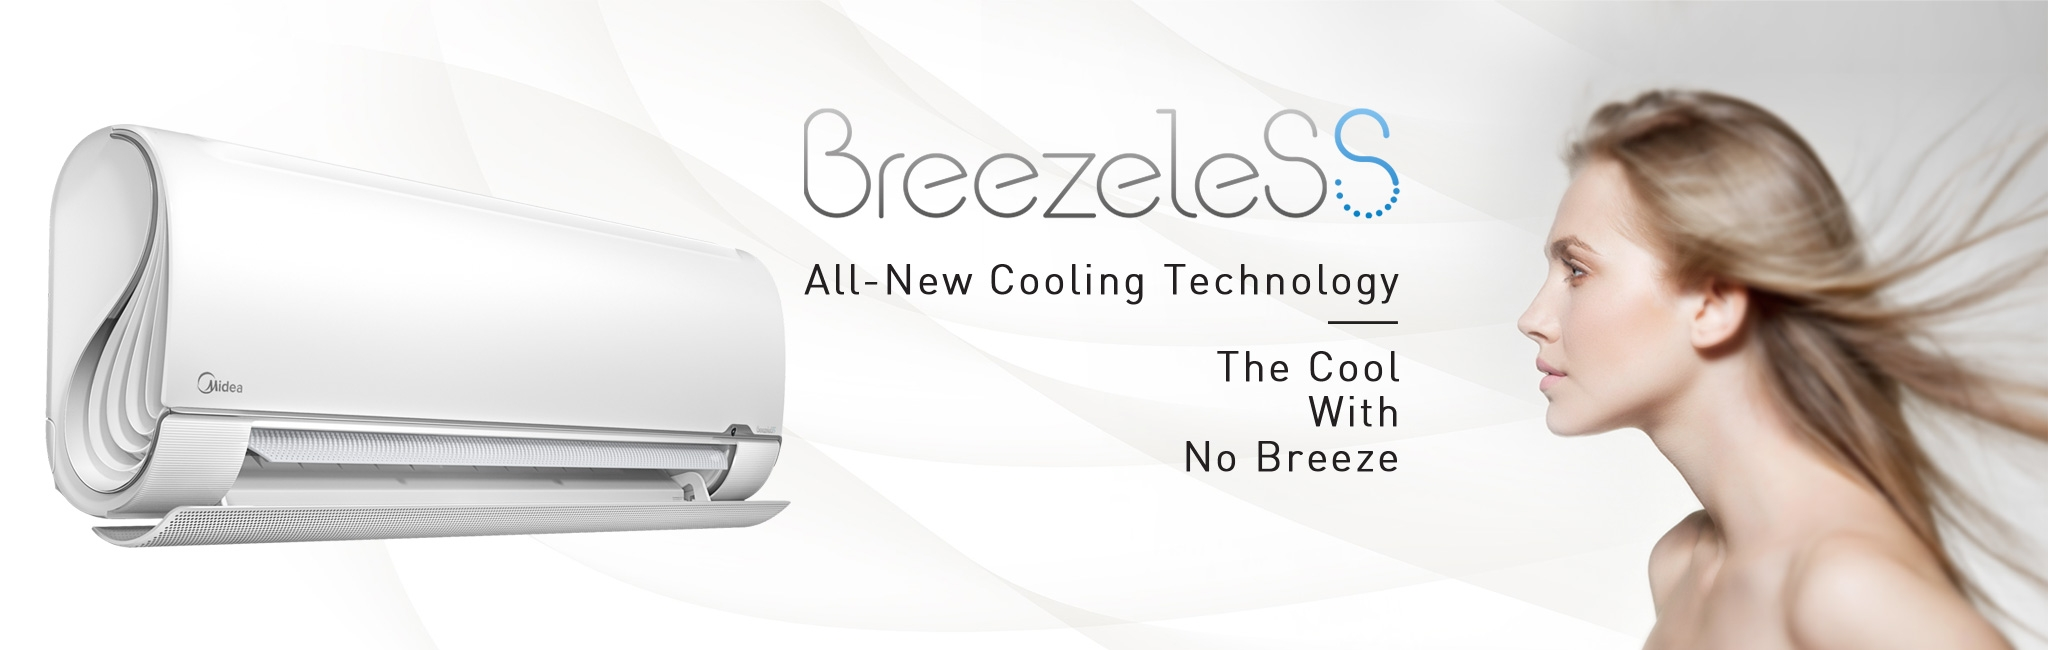 Cool your hotness with Midea BreezeleSS.